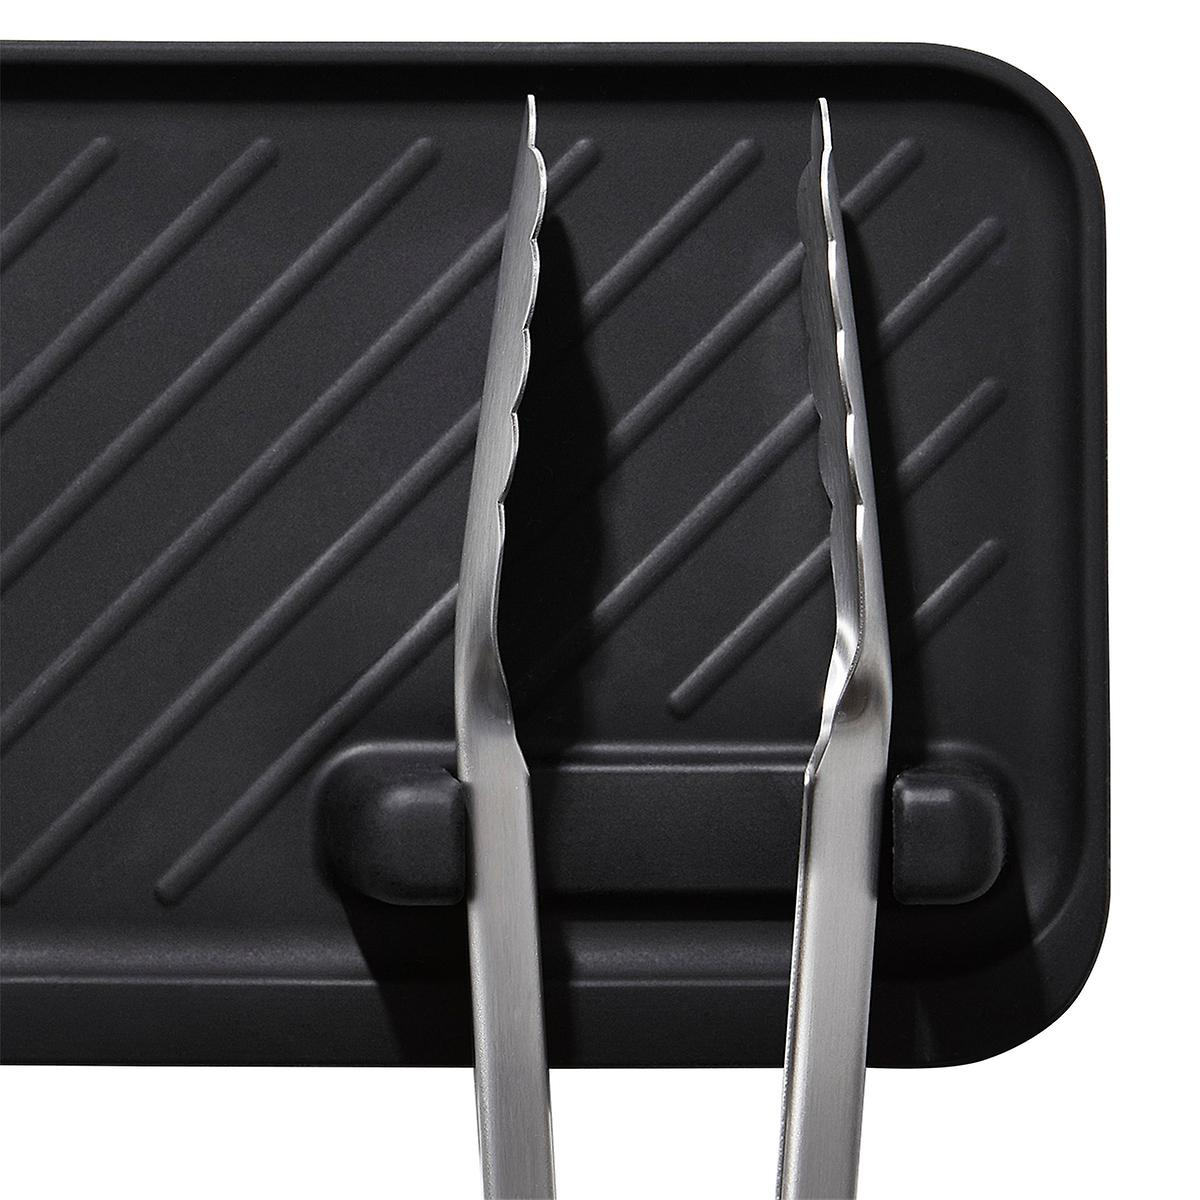 OXO Grill Tool Rest